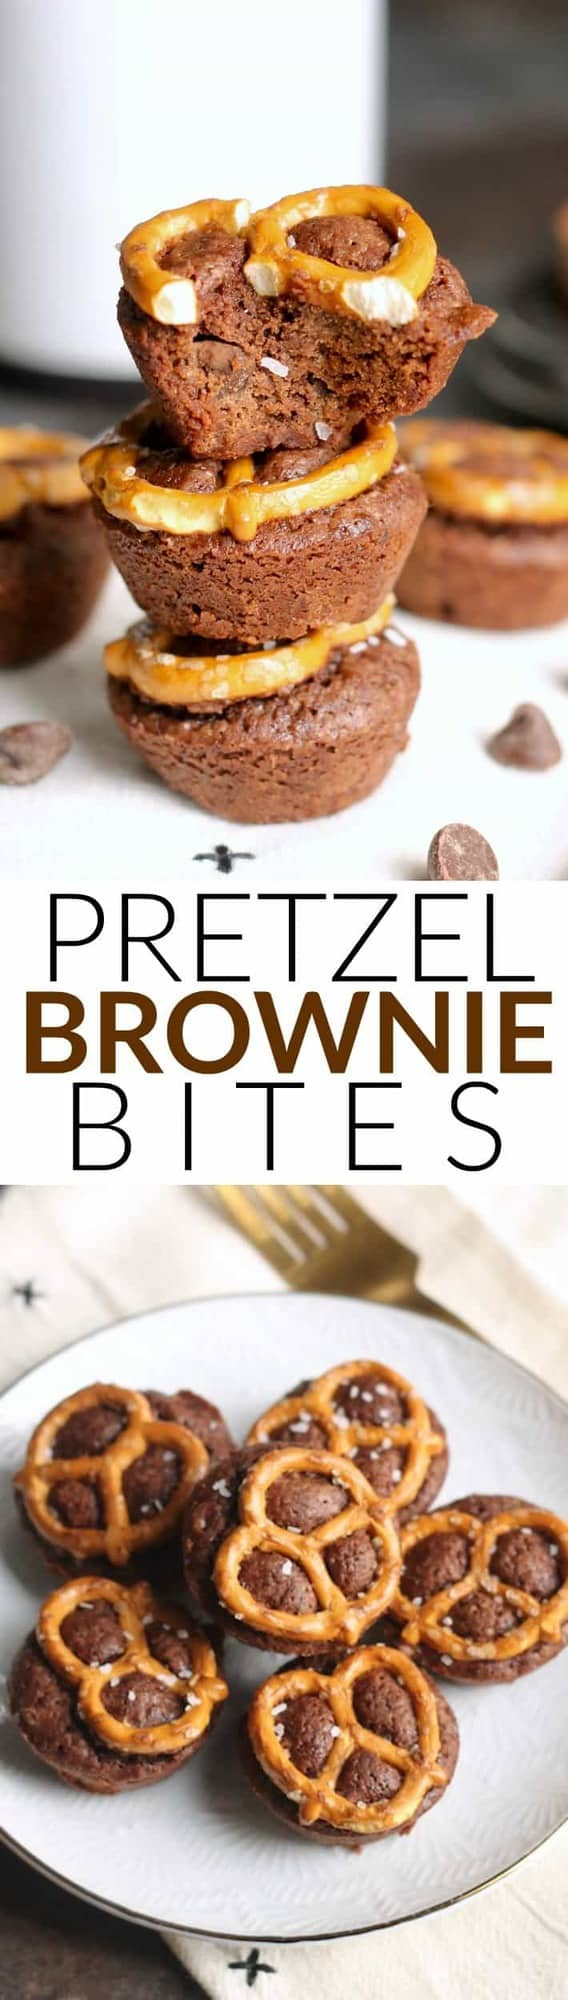 These easy, fudgy Double Chocolate Pretzel Brownie Bites with chocolate chips make the ultimate treat! The pretzel topping adds just enough salt and crunch for the perfect bite.